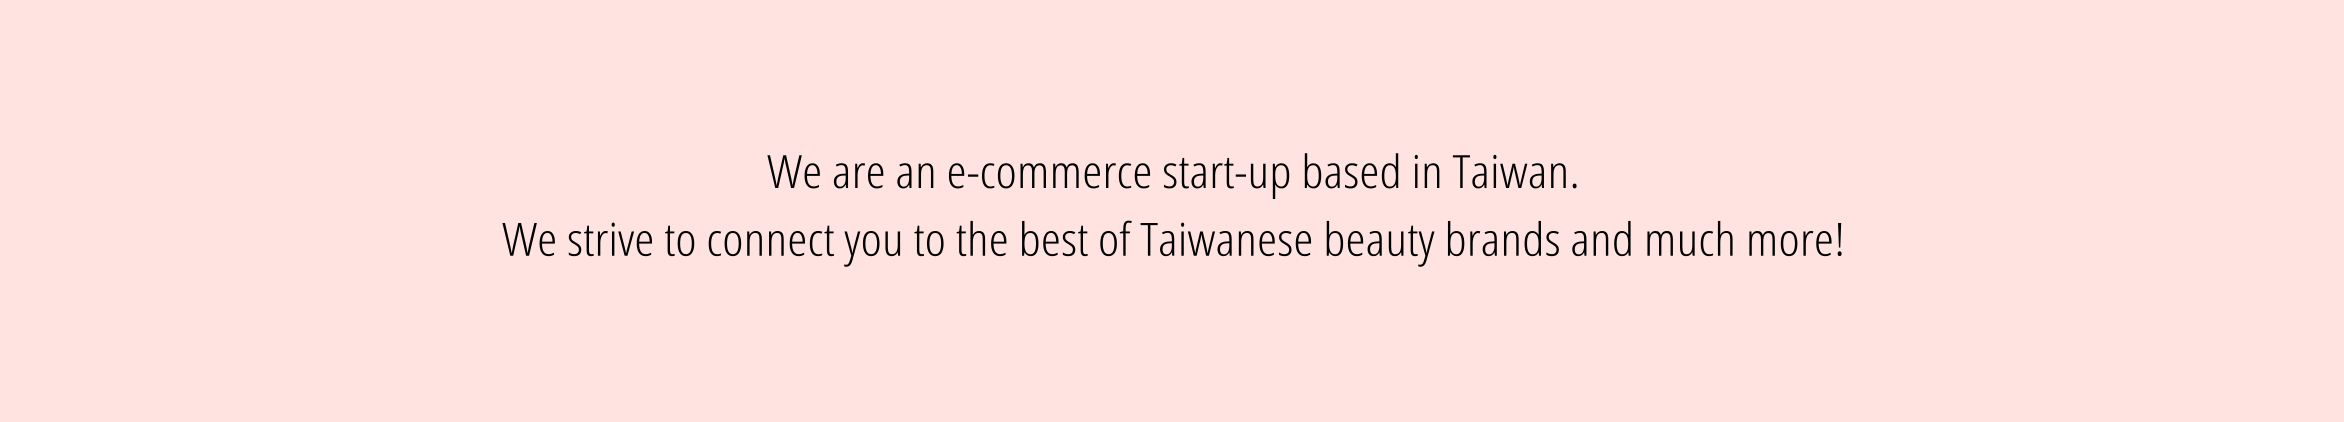 We are an ecommerce start-up specializing in Asian cosmetics. We strive to connect you to the best of Taiwanese beauty brands and much more!